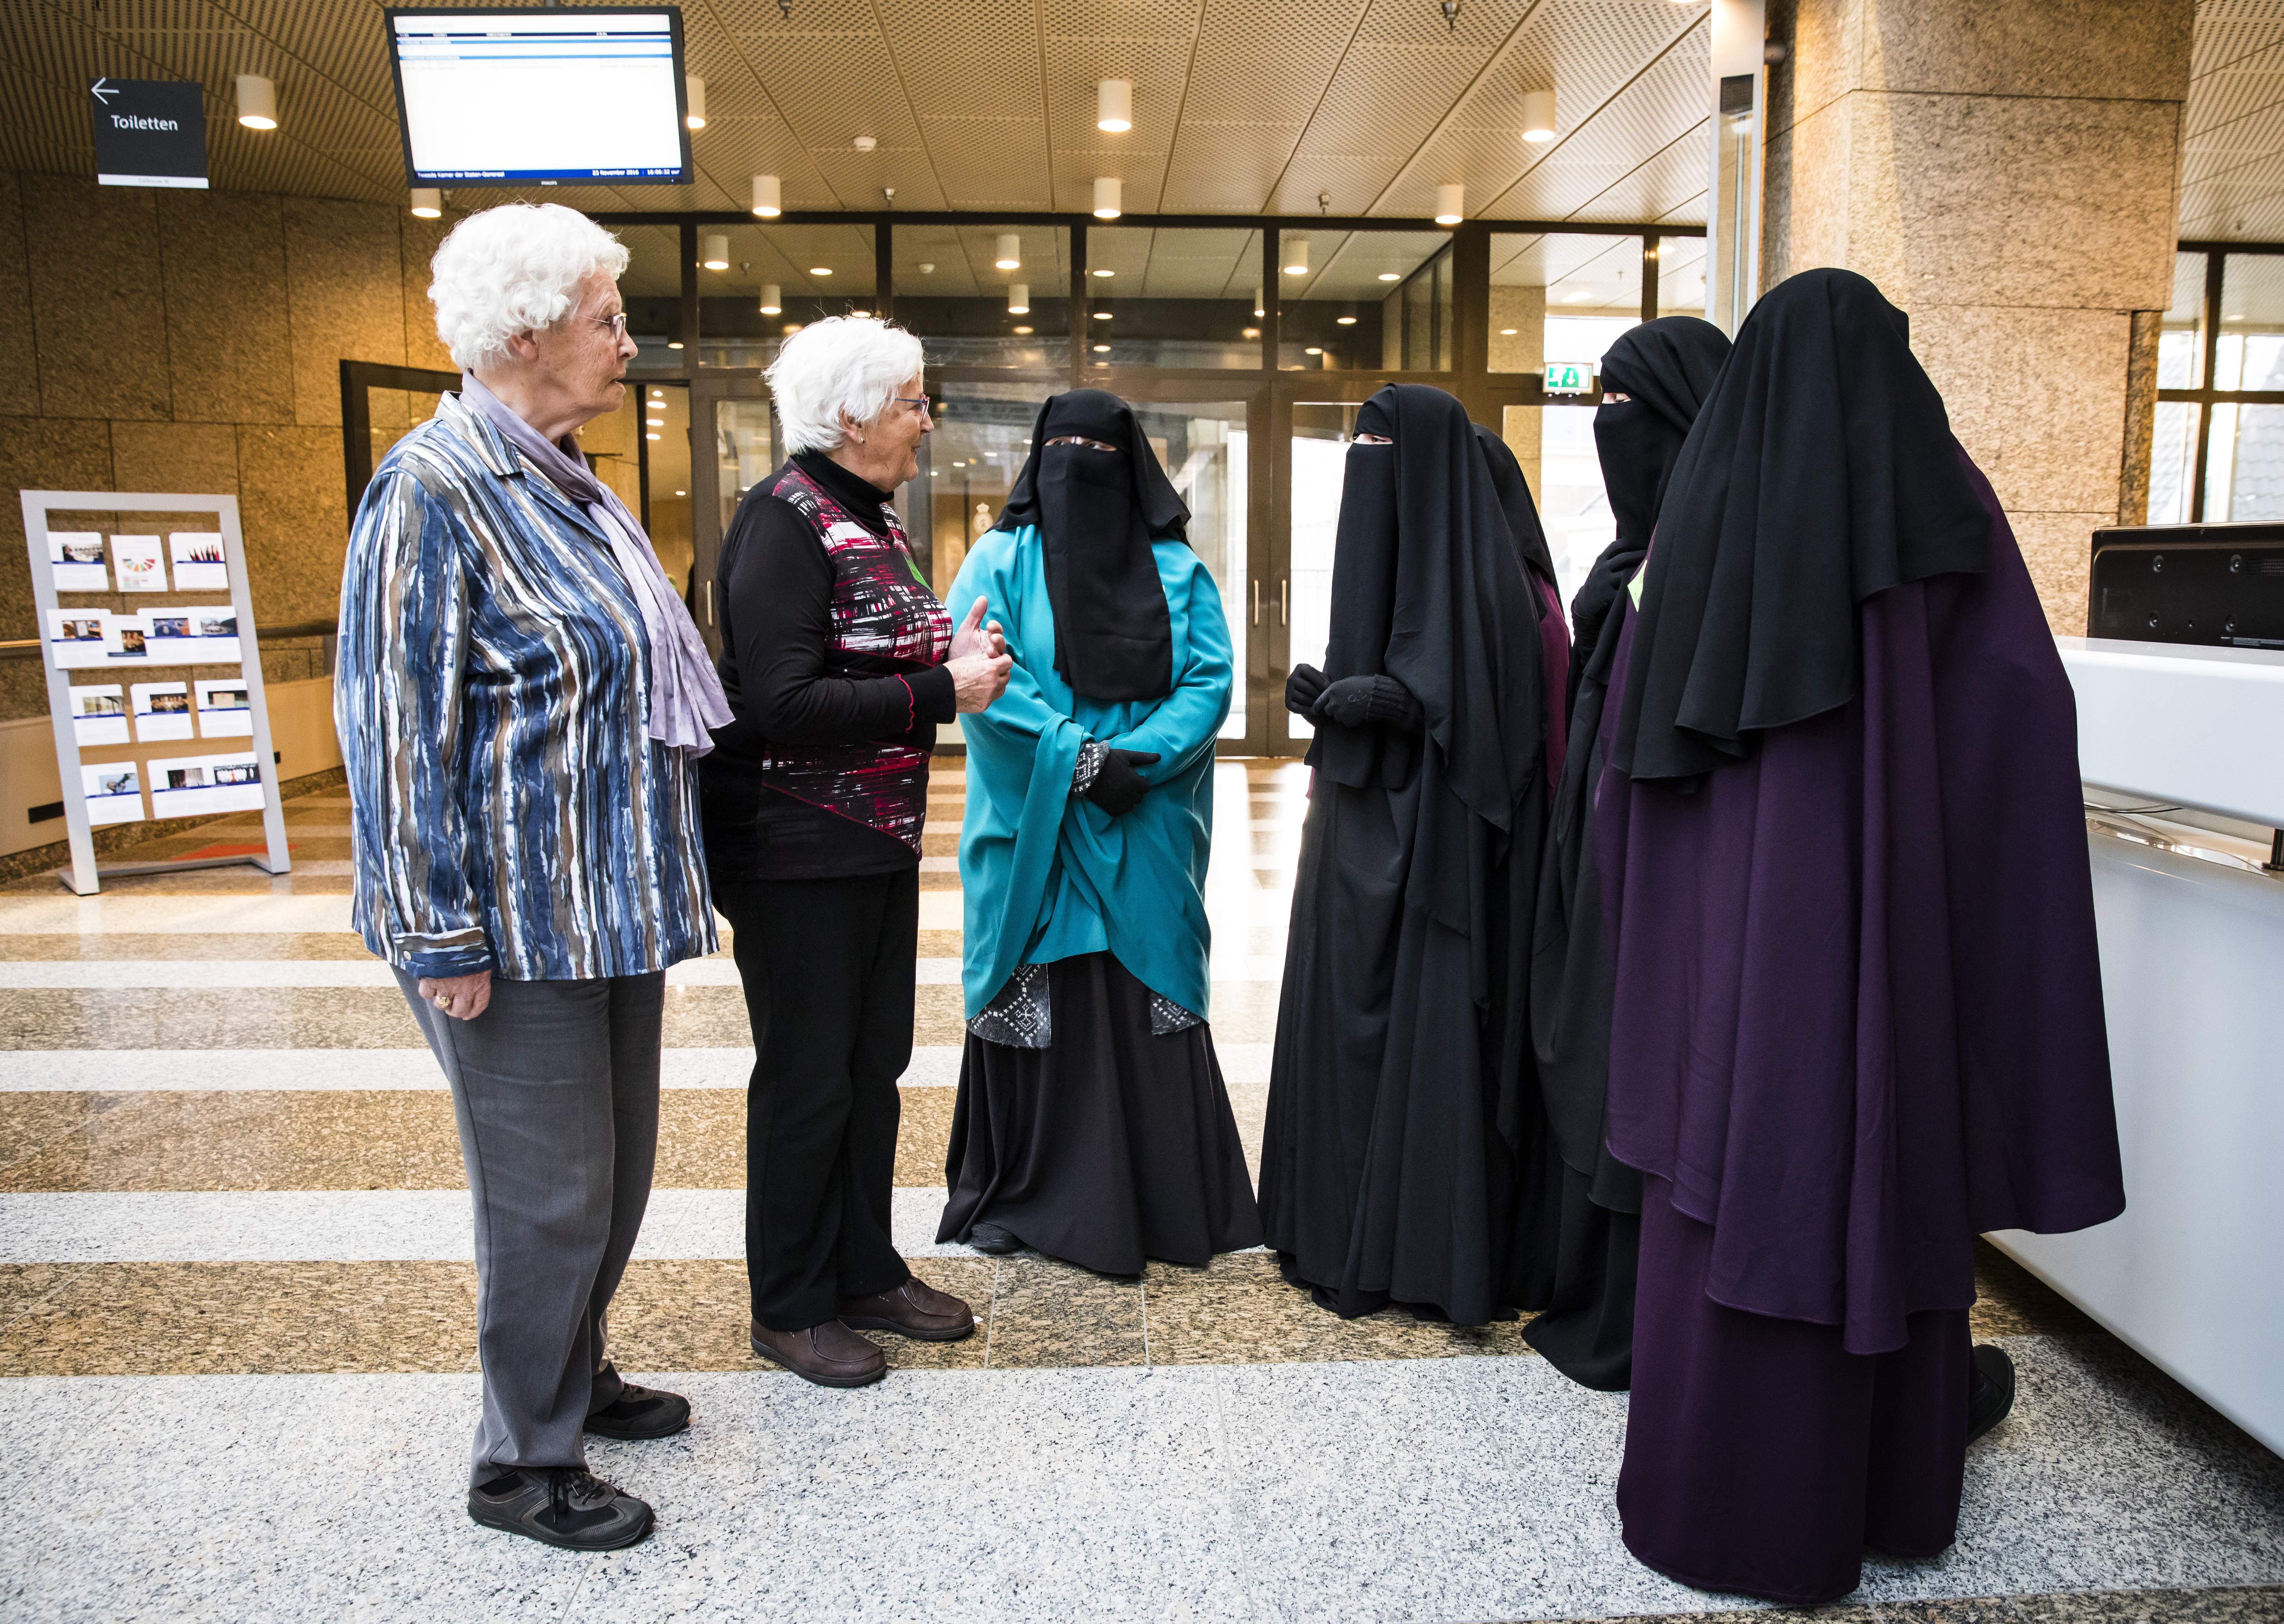 Two women stand next to women wearing niqab as they visit the Senate on November 23, 2016 in the Hague, the Netherlands.